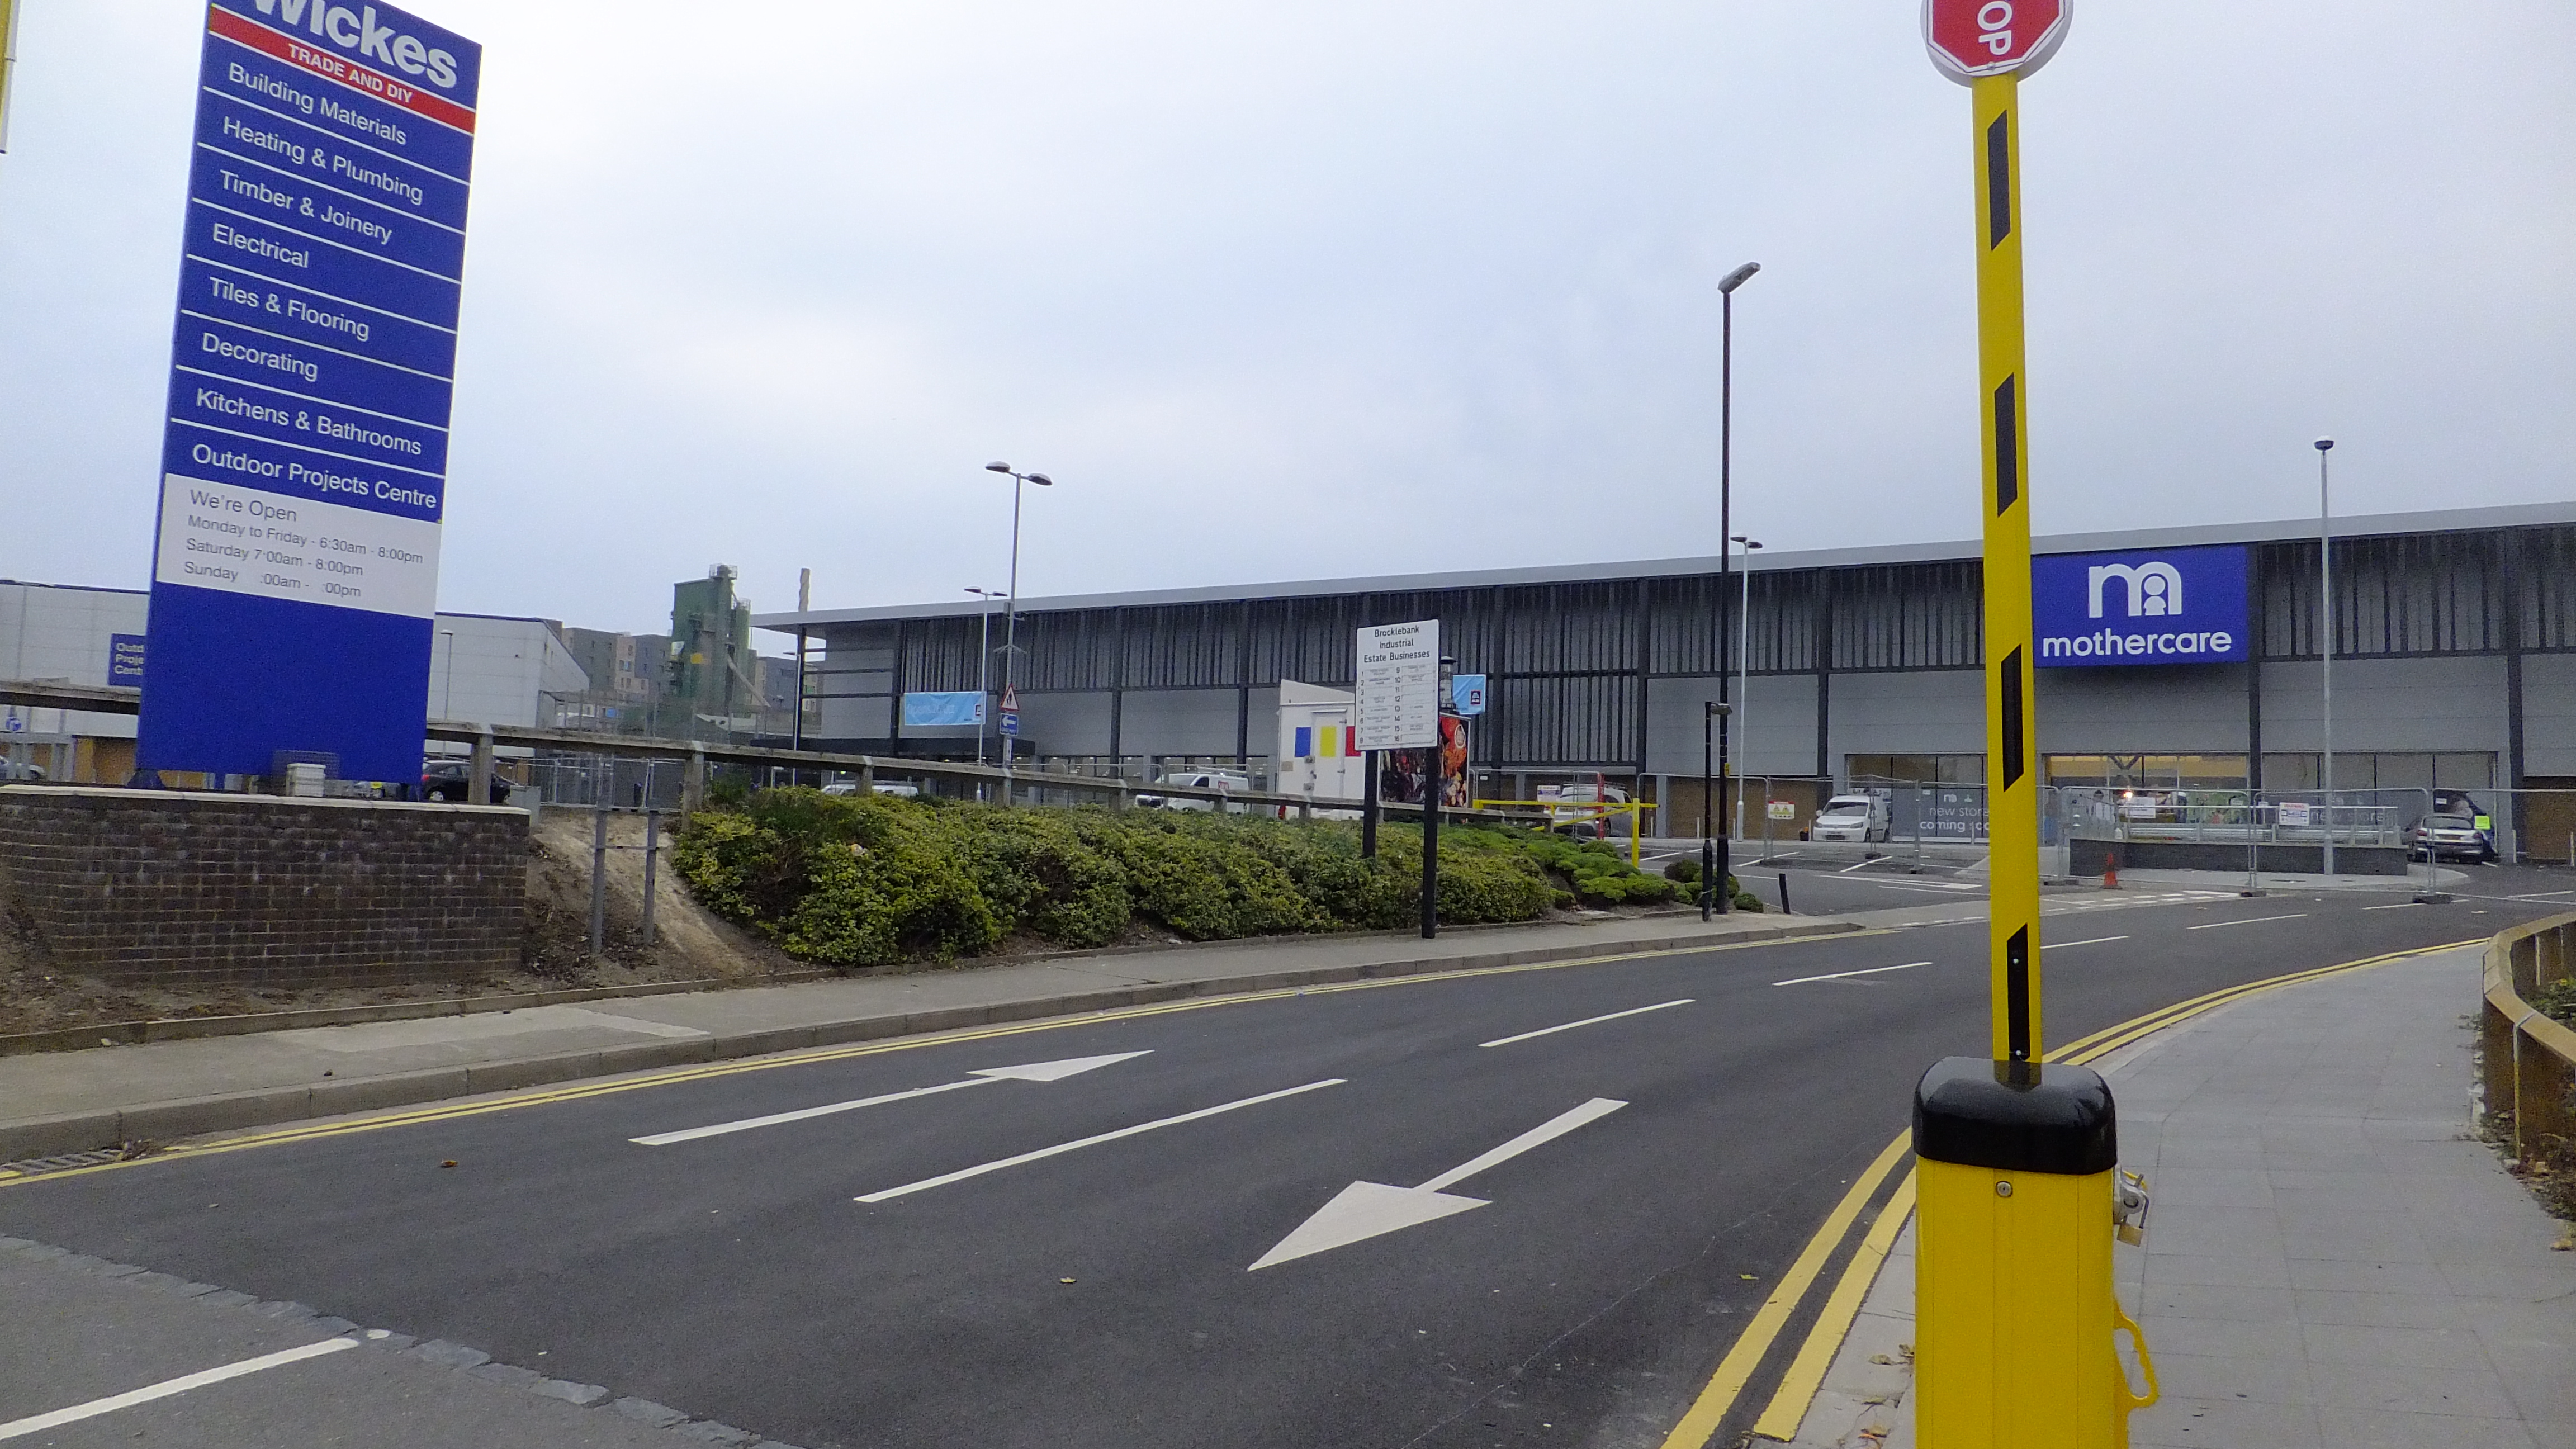 New Aldi in Charlton opens end of October as few pedestrian improvements seen